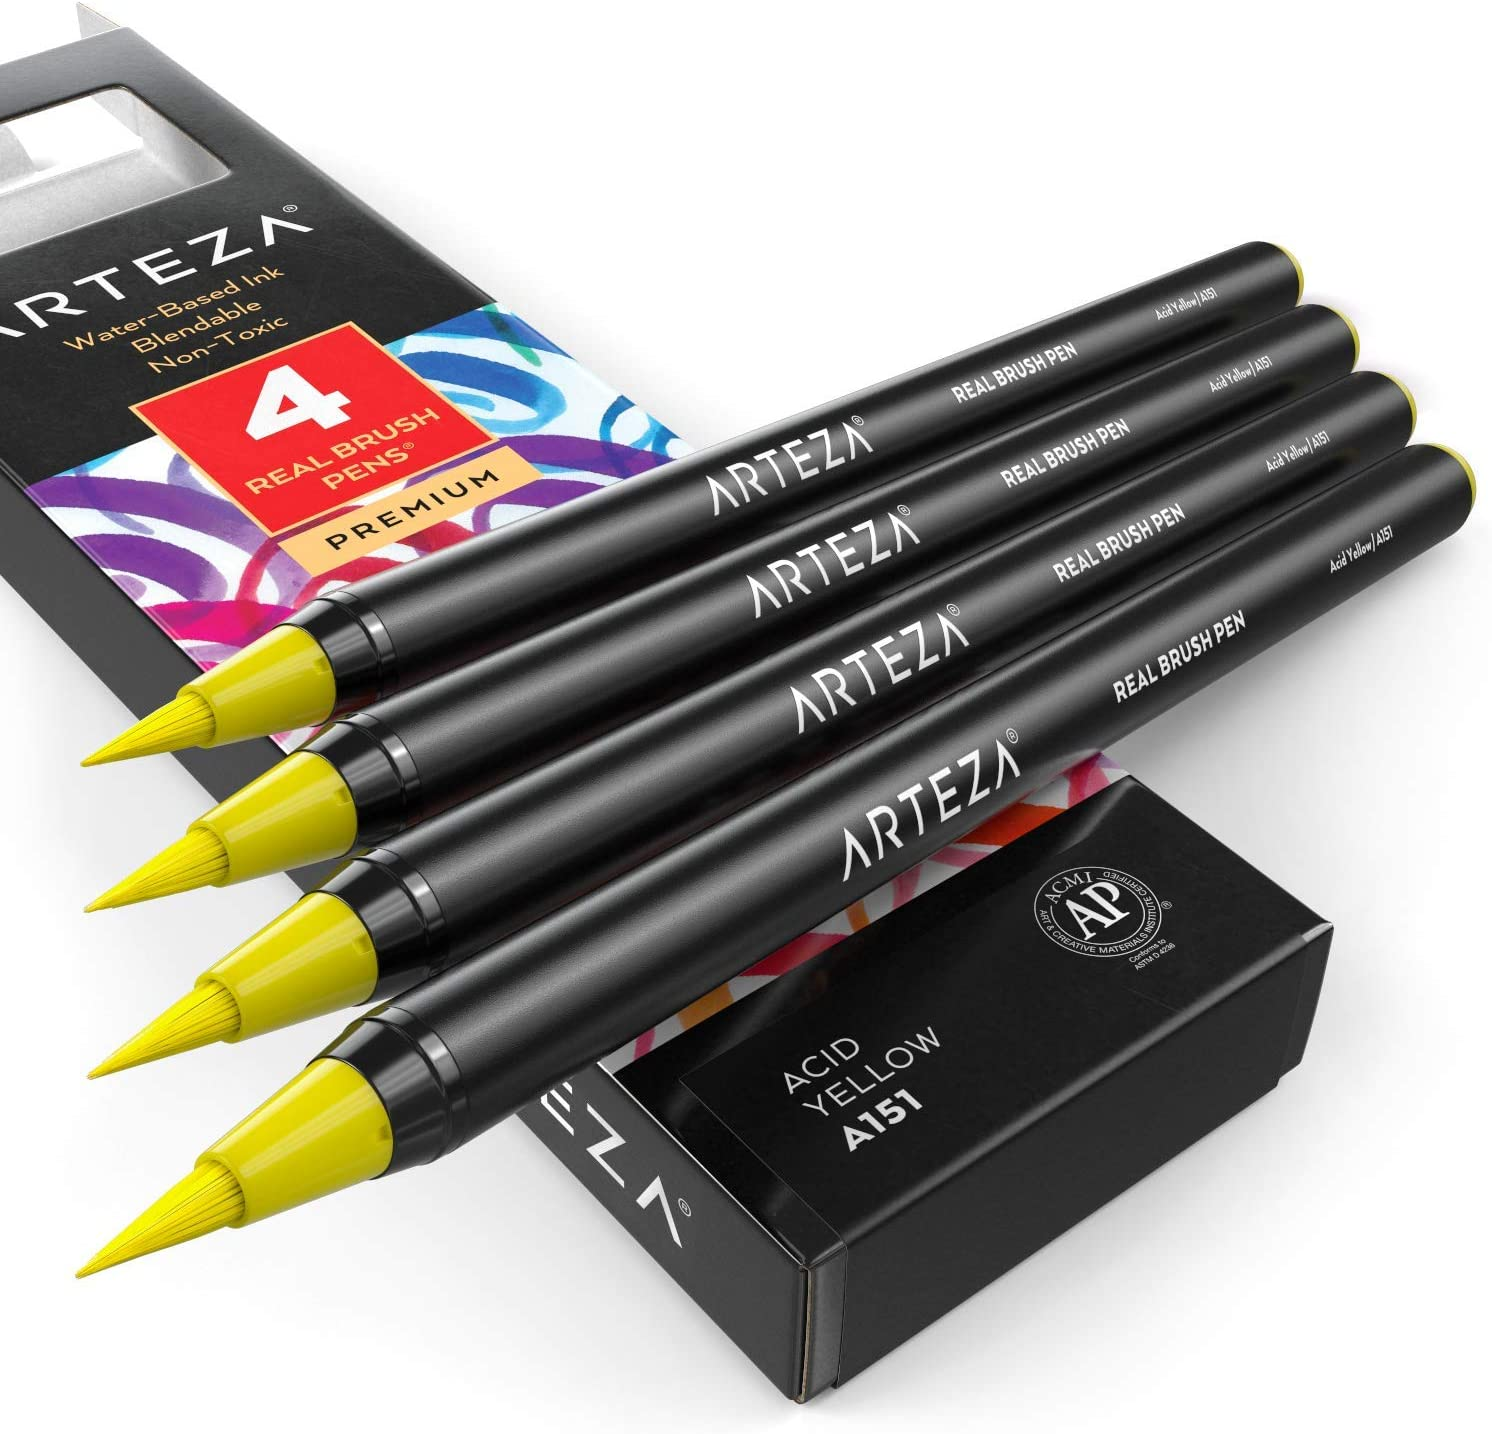 ARTEZA Real Brush Pens (A151 Acid Yellow) Pack of 4, for Watercolor Painting with Flexible Nylon Brush Tips, Paint Markers for Coloring, Calligraphy and Drawing